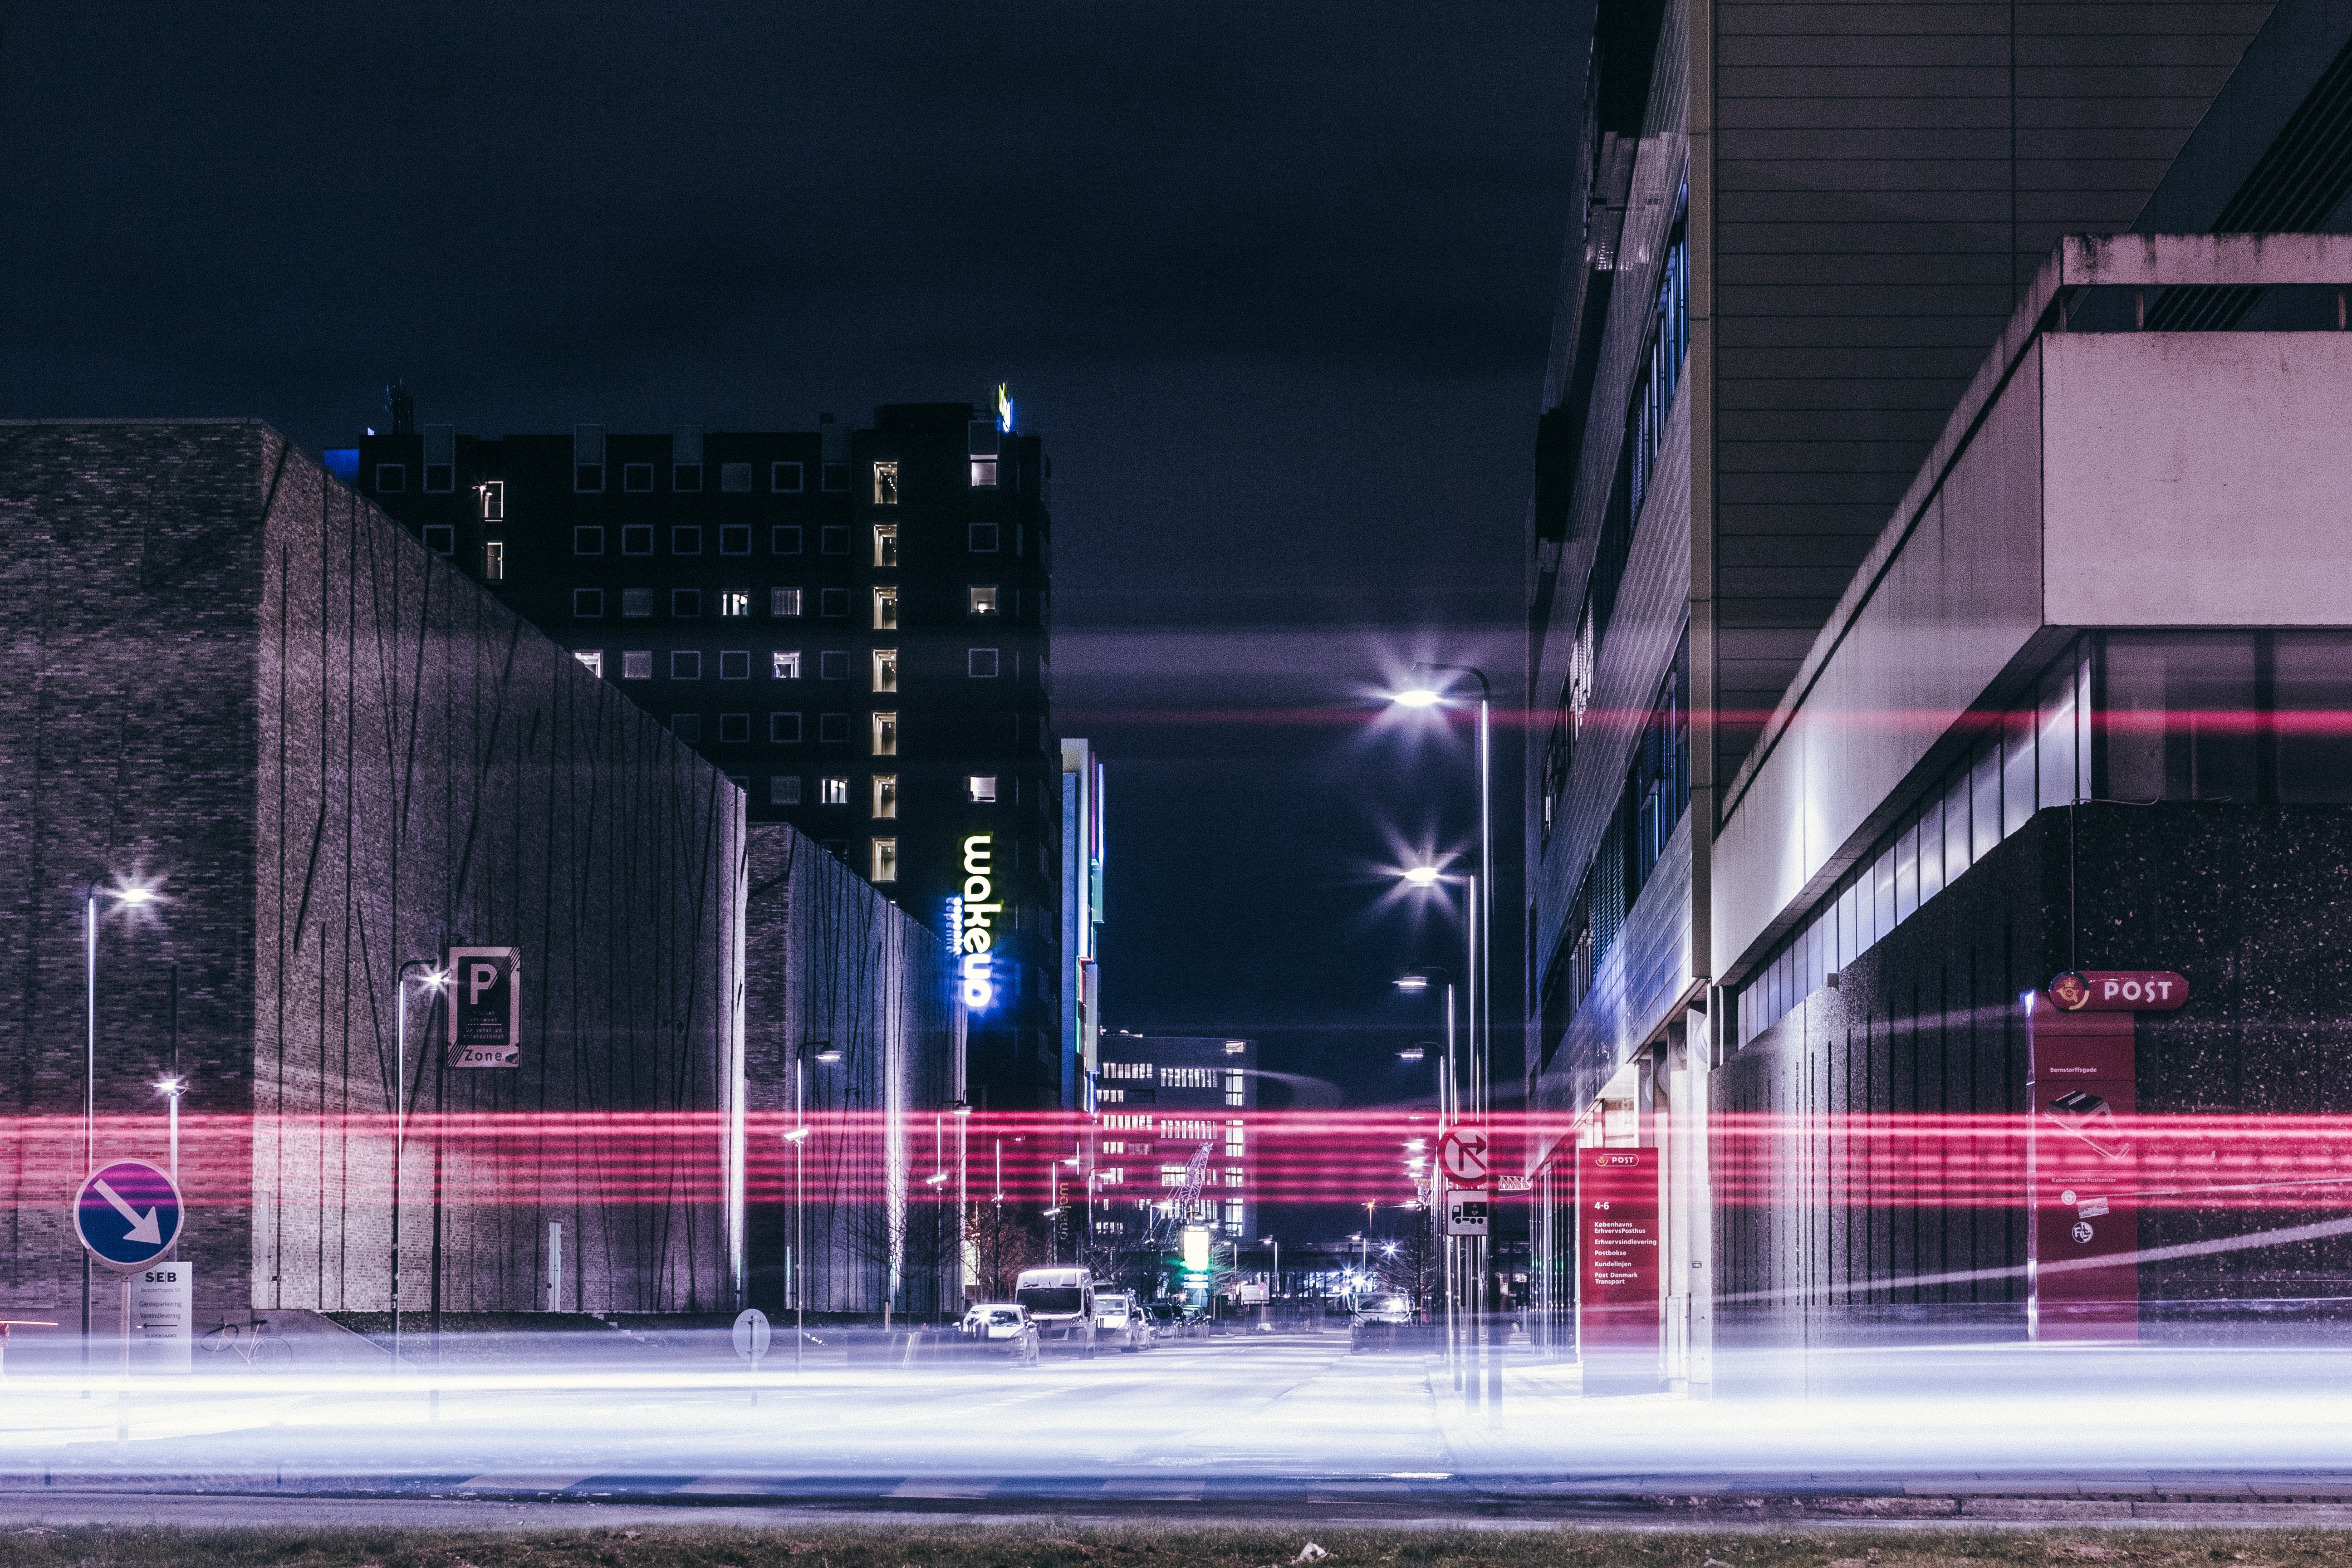 A long-exposure shot of light trails in a street in Copenhagen at night